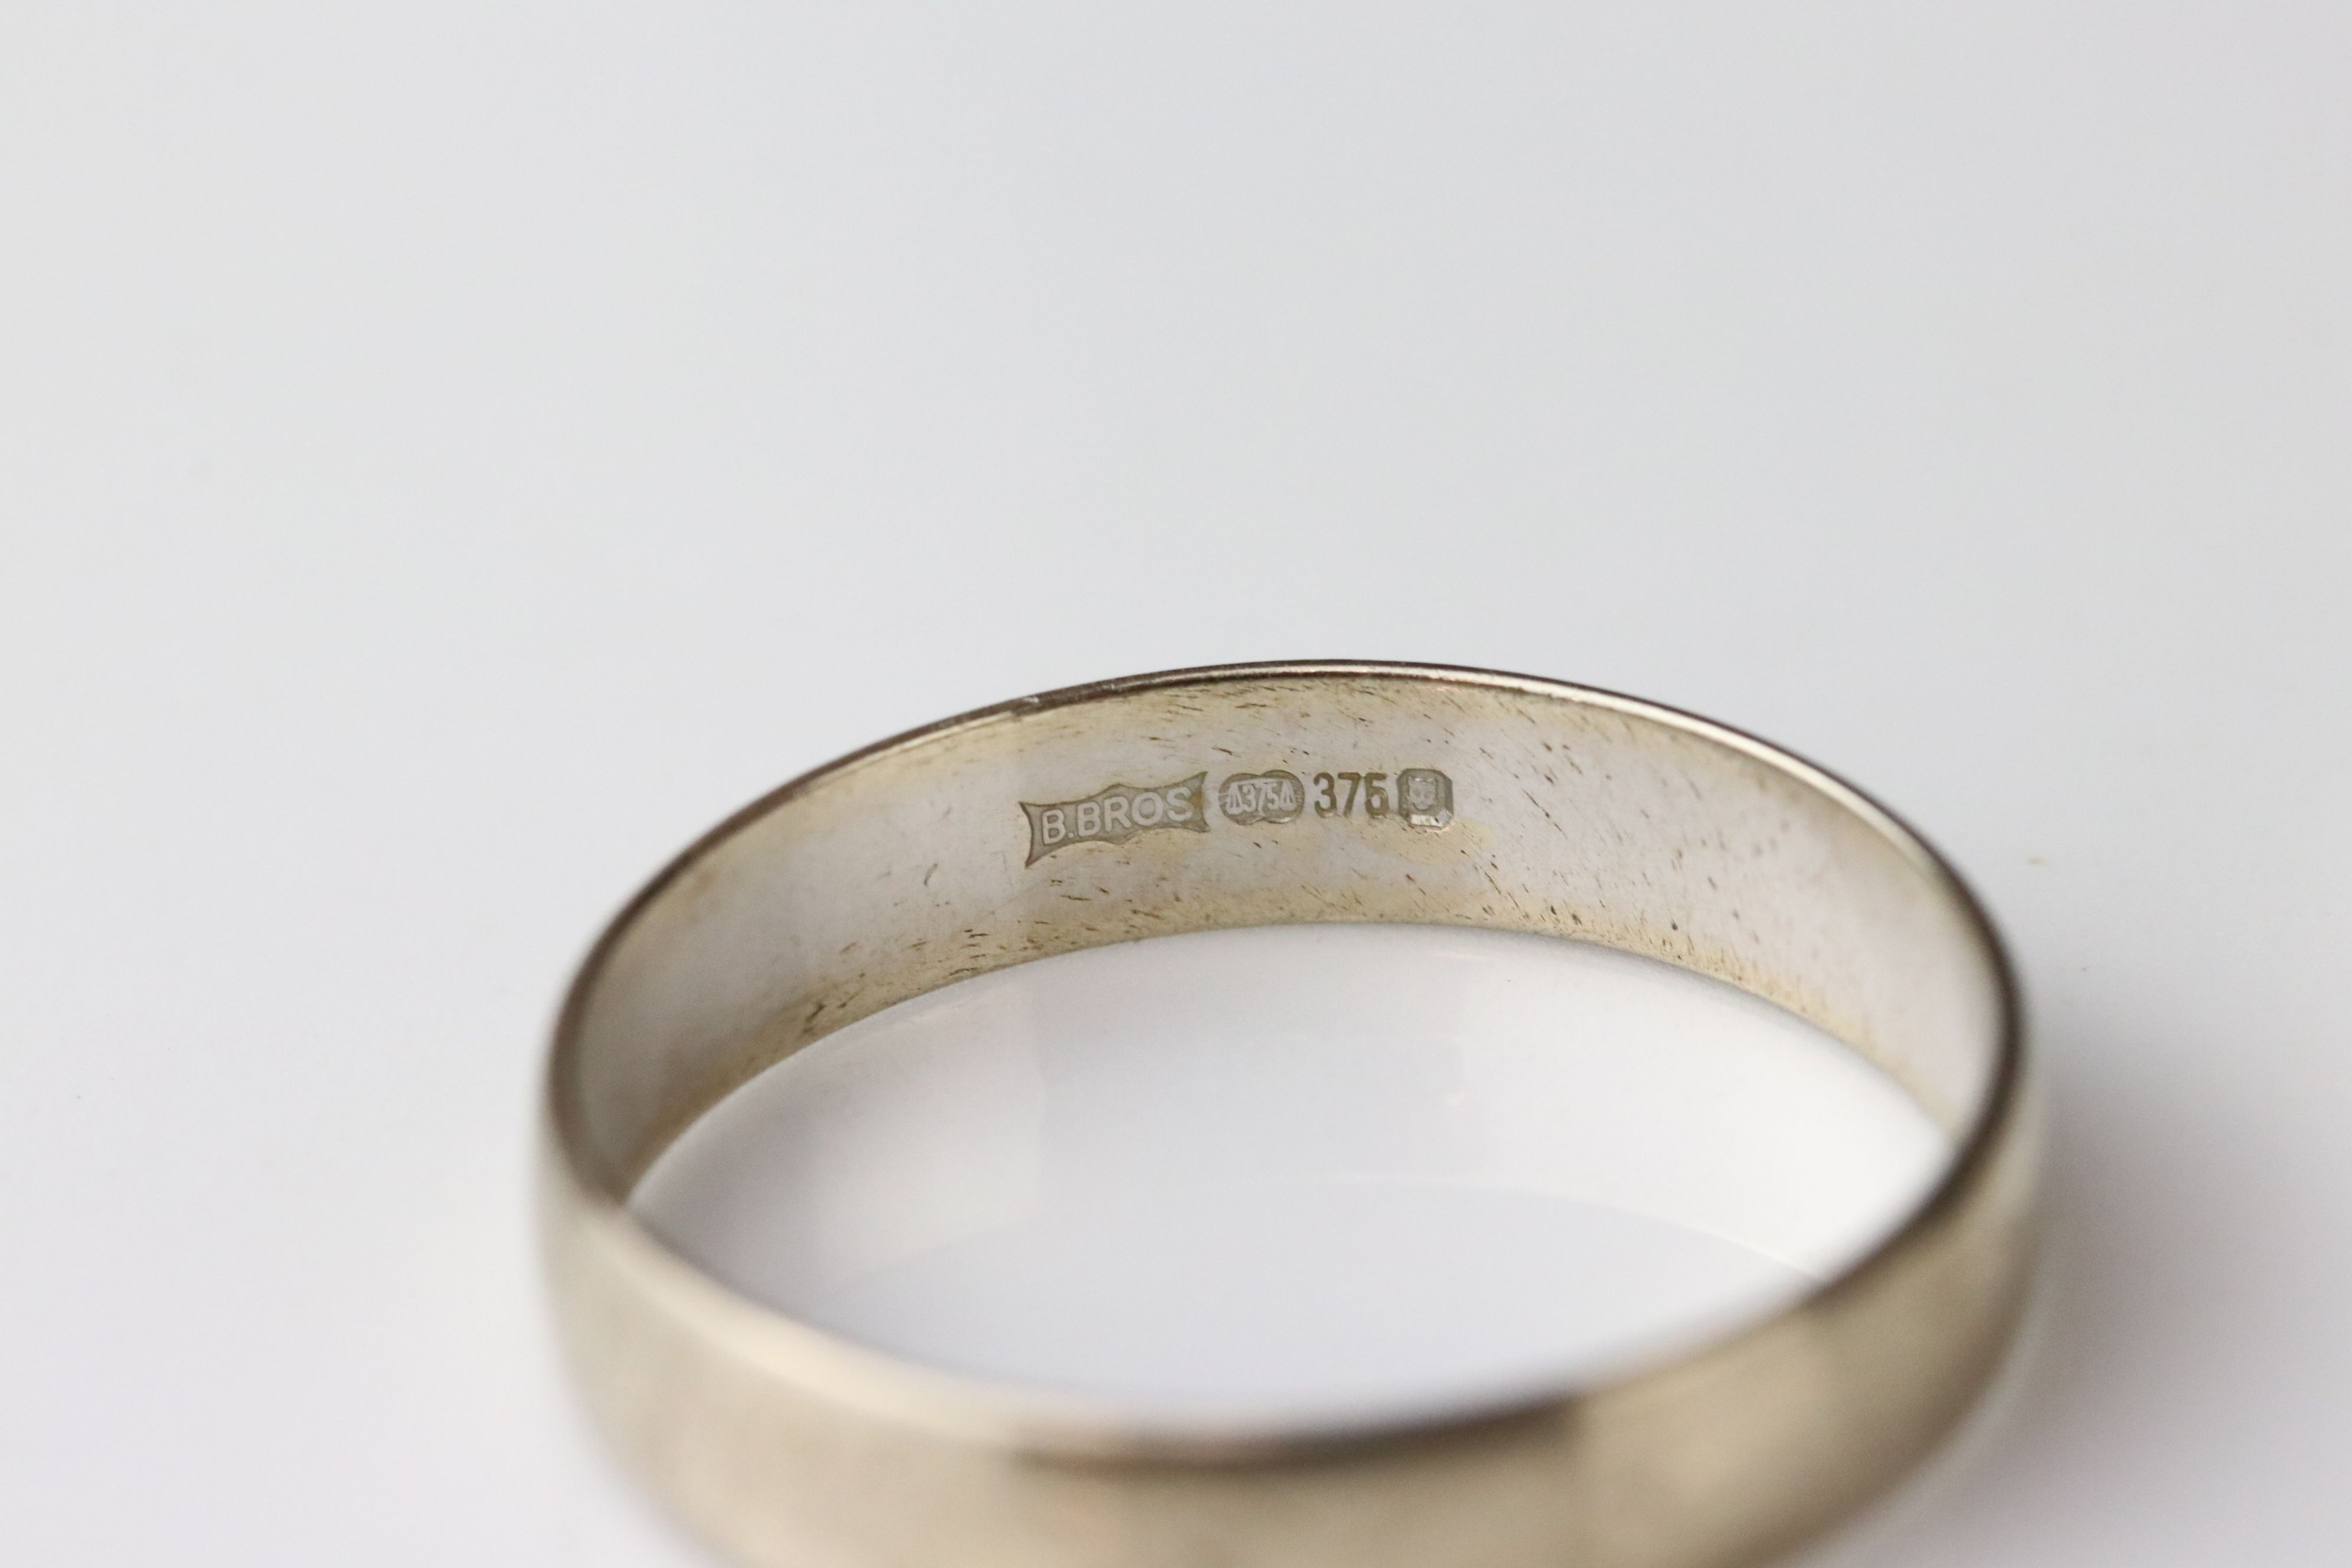 9ct white gold plain polished wedding band, width approx 4mm, ring size R (needs rhodium plating) - Image 5 of 5